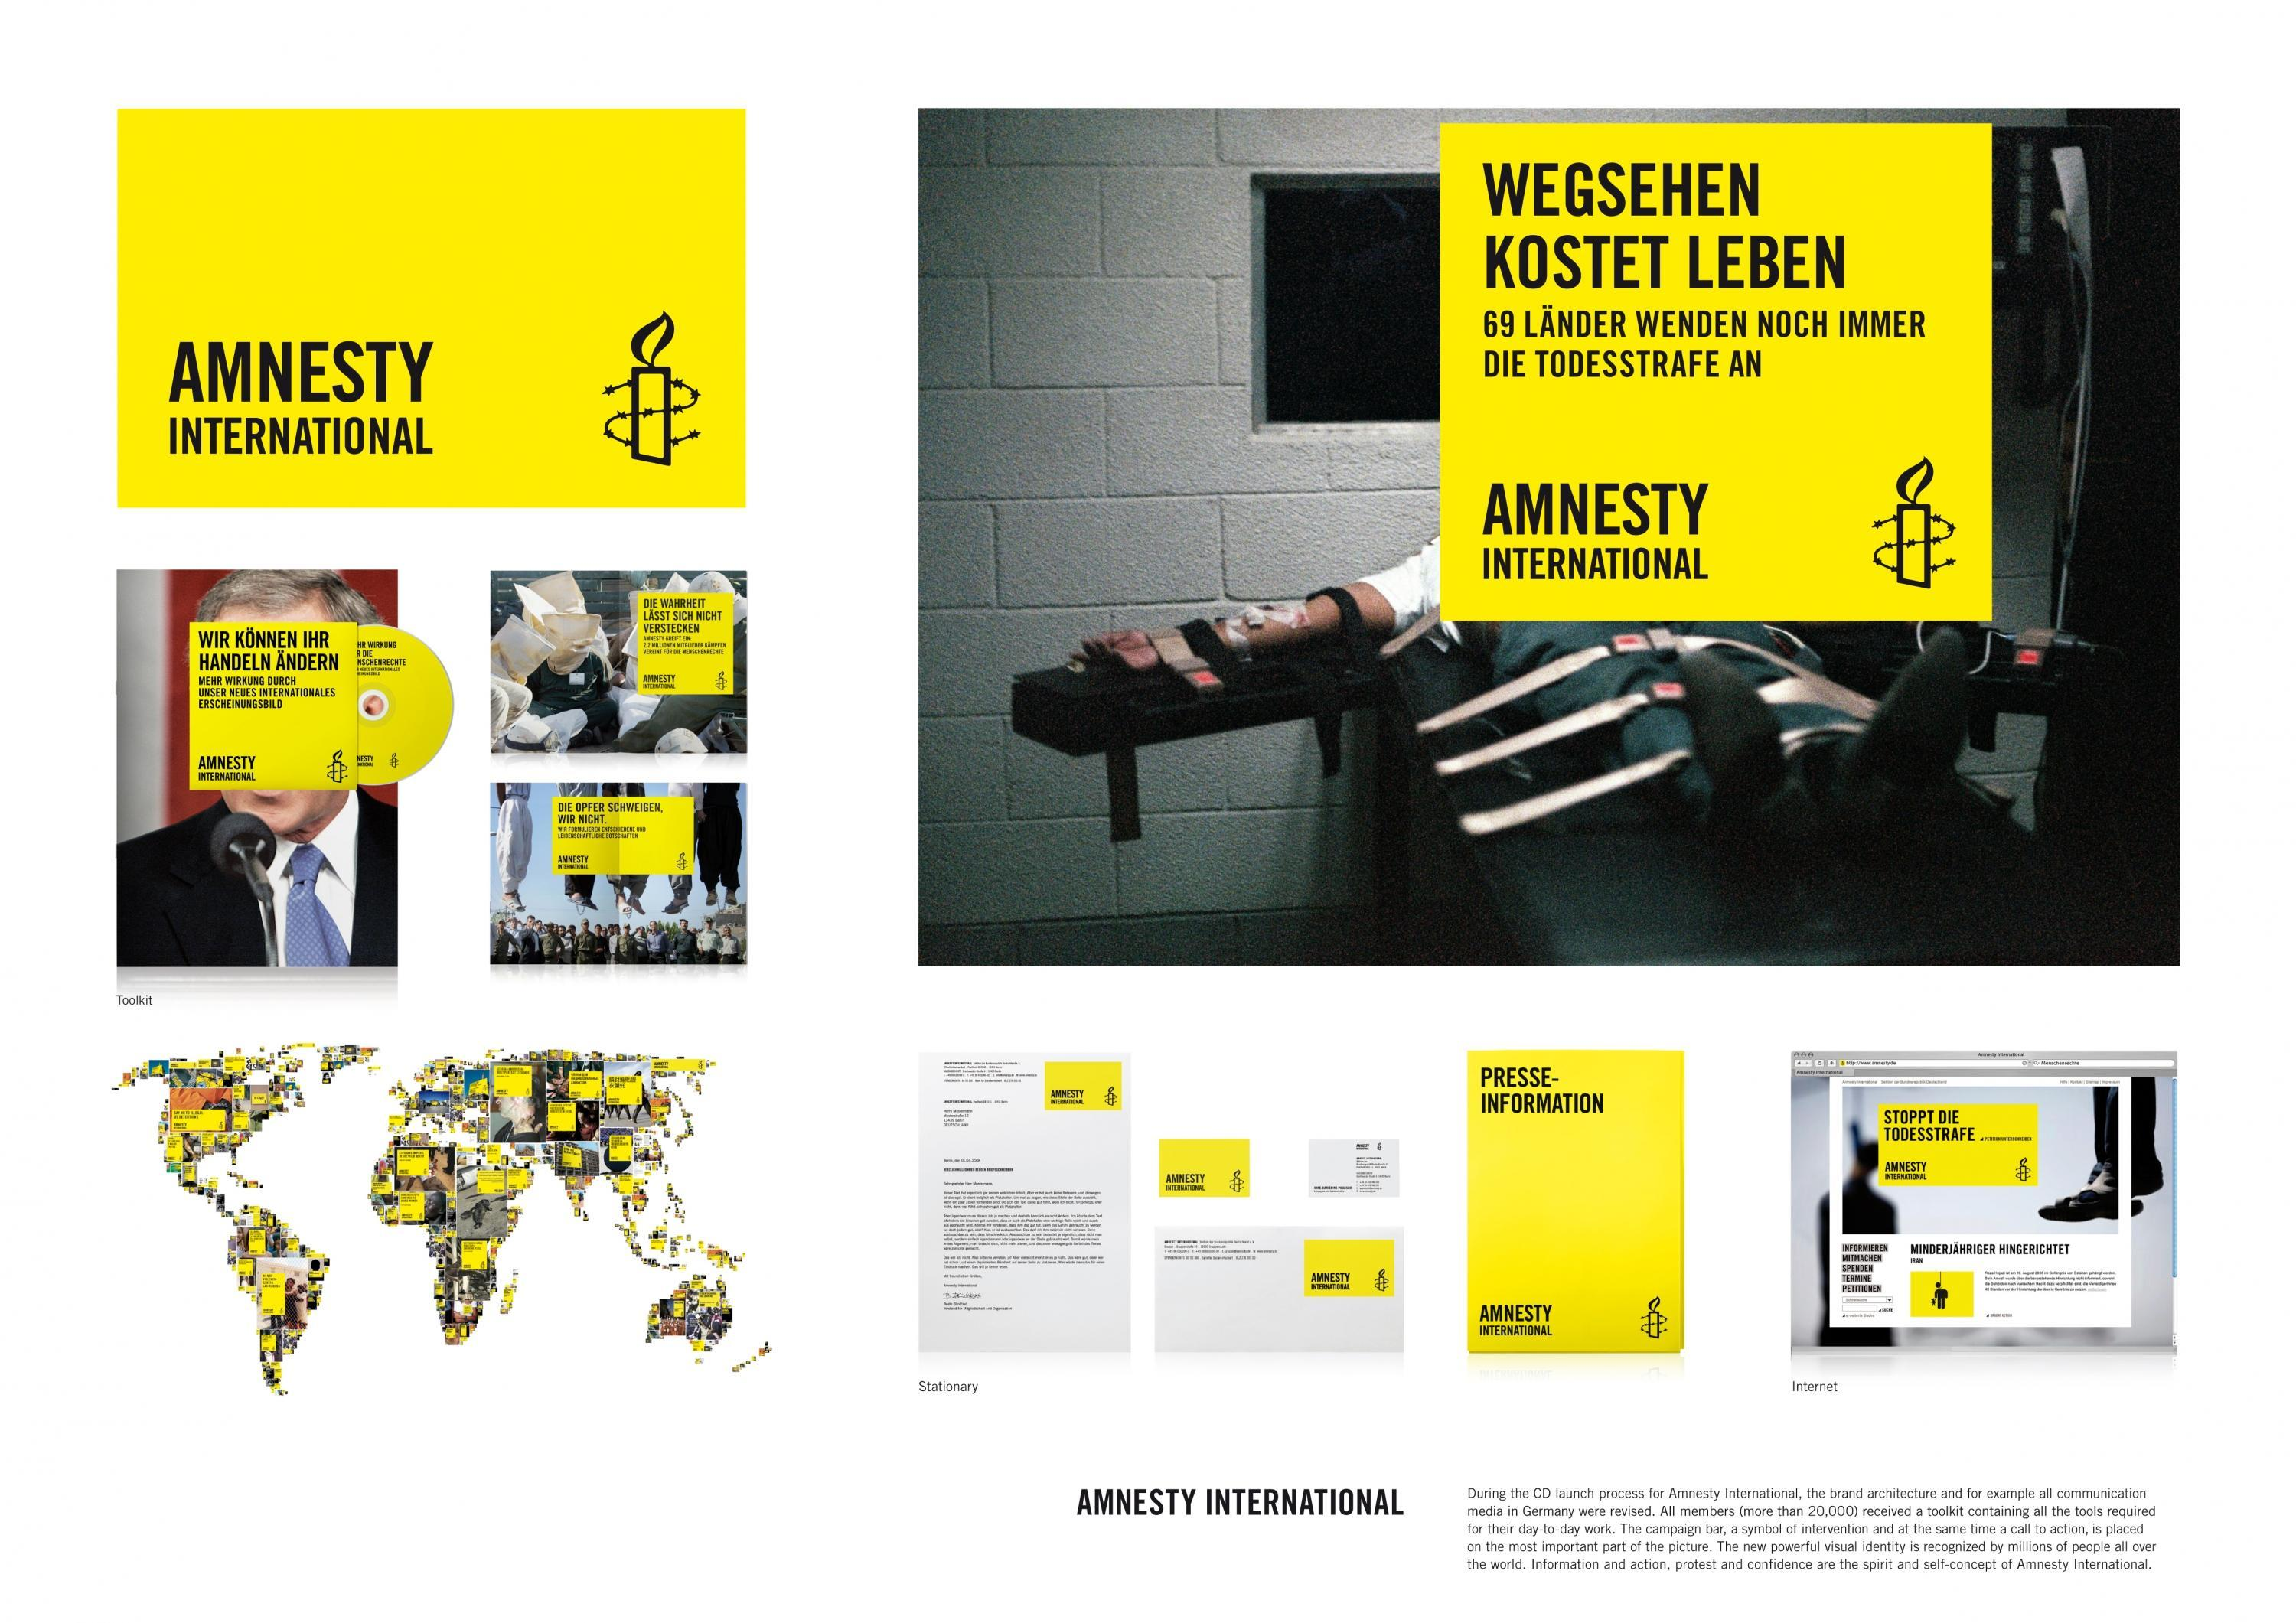 amnesty international human rights charity more impact for human